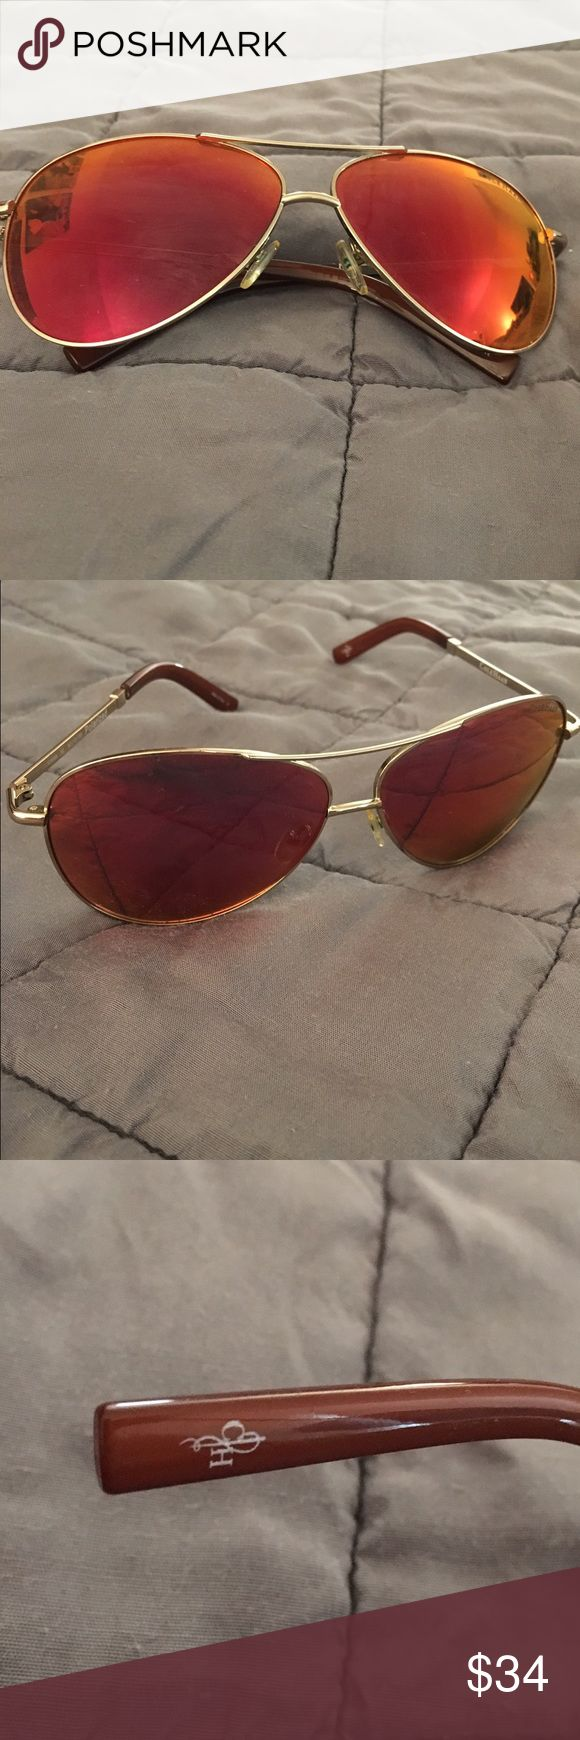 Polarized Cole Haan RED Gold Aviator sunglasses😎 Cole Haan RED / Gold Aviator polarized sunglasses 😎 Cole Haan Accessories Sunglasses